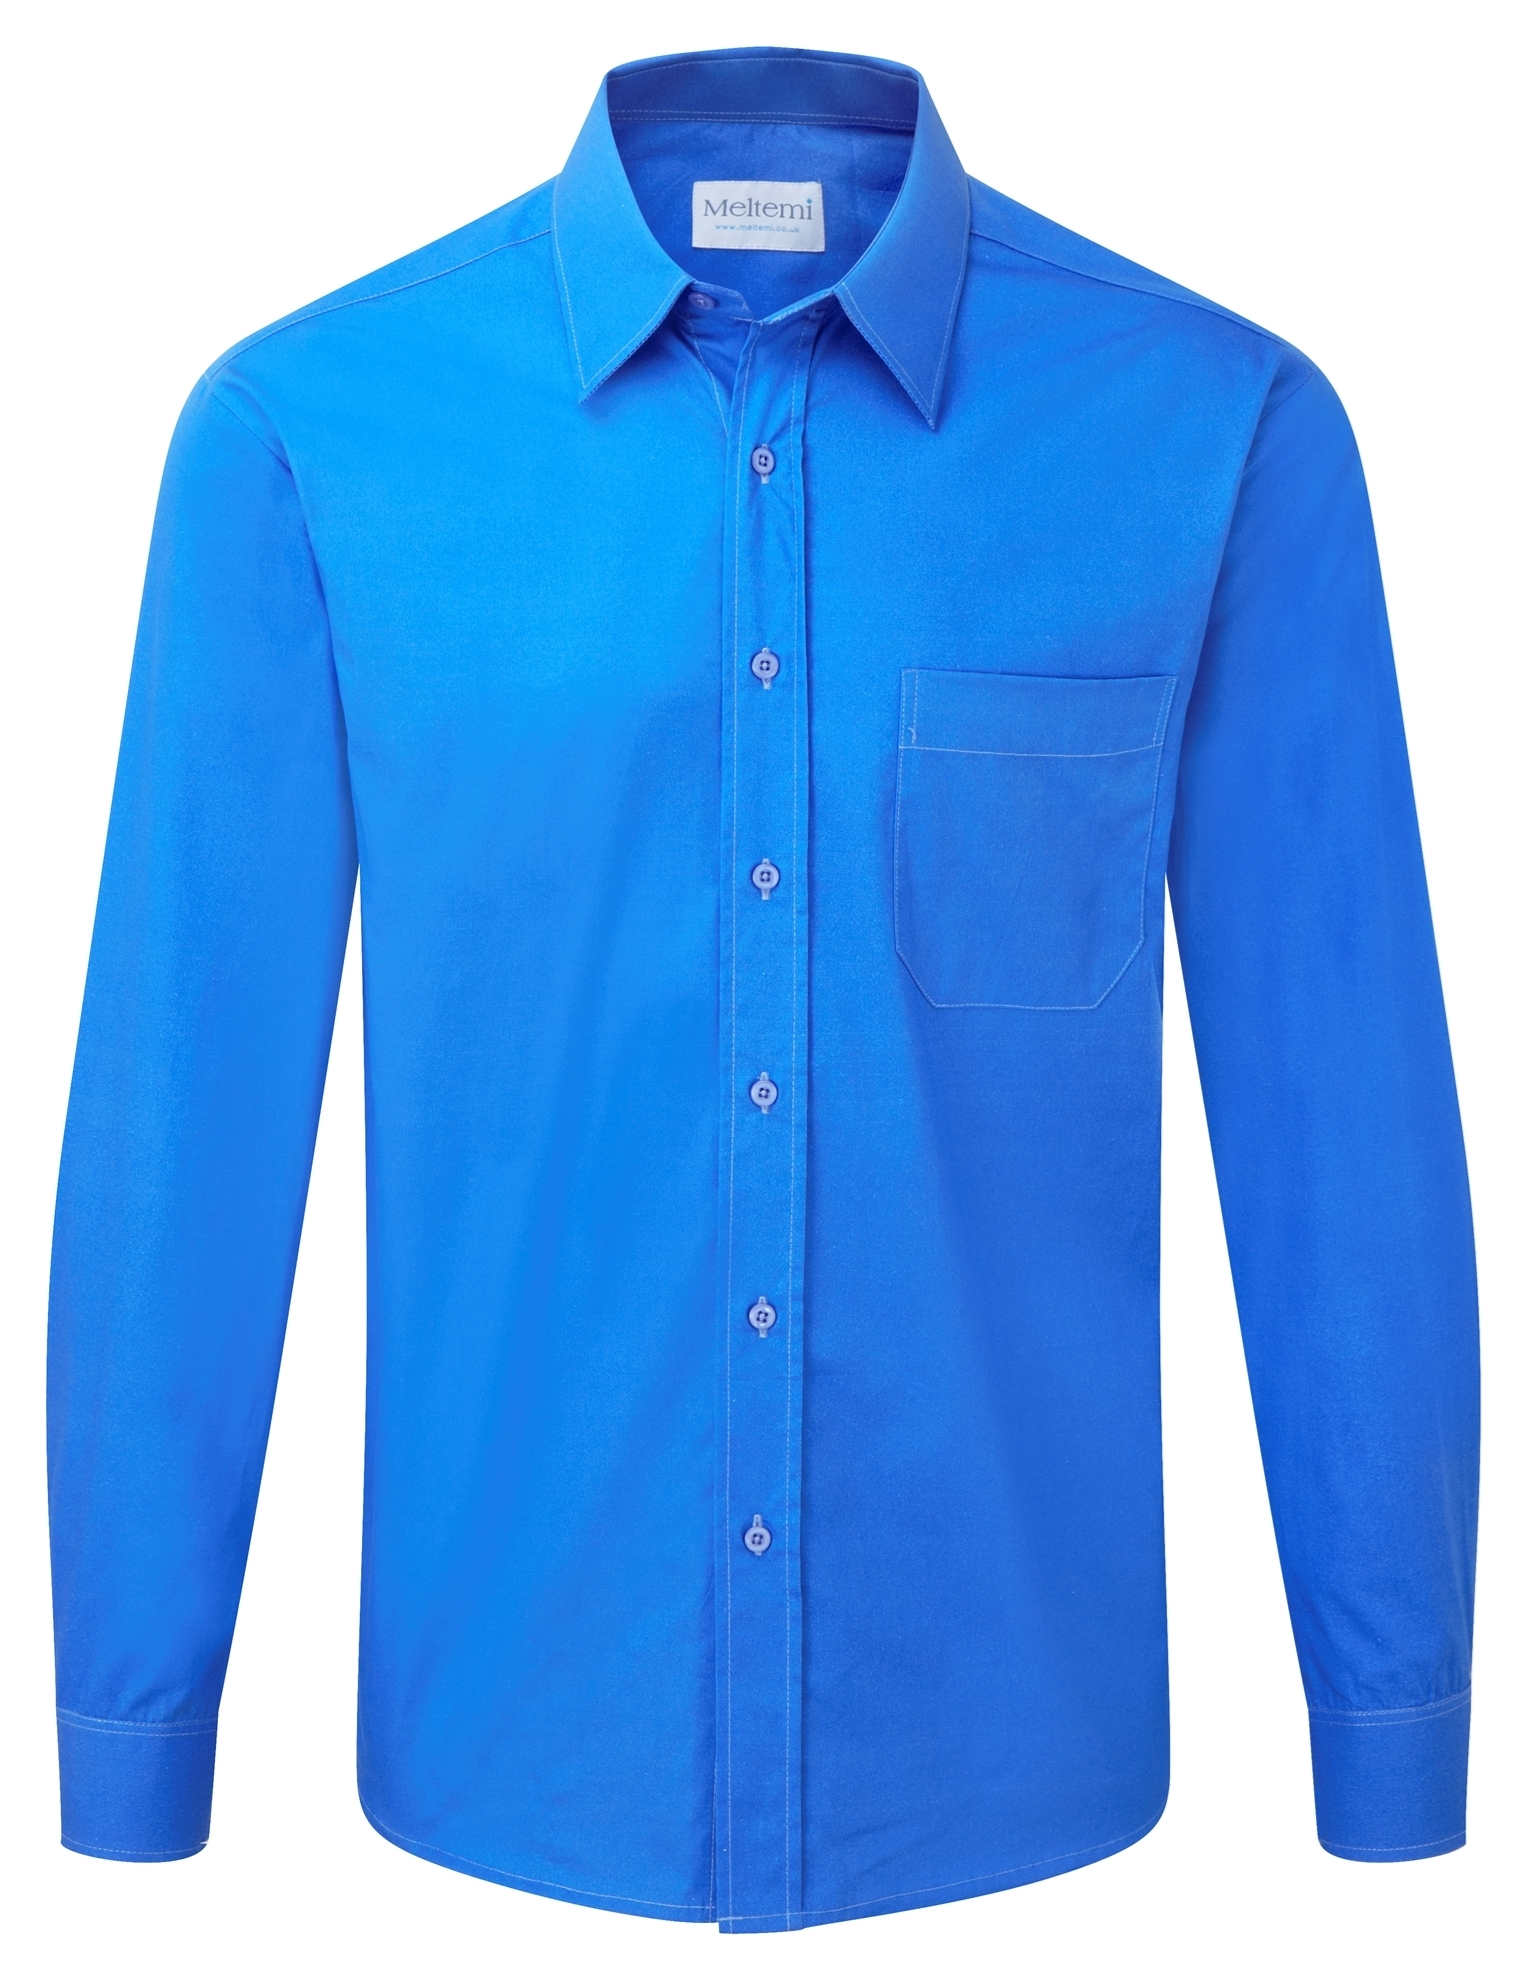 Picture of Male Long Sleeve Shirt - Plain Azure